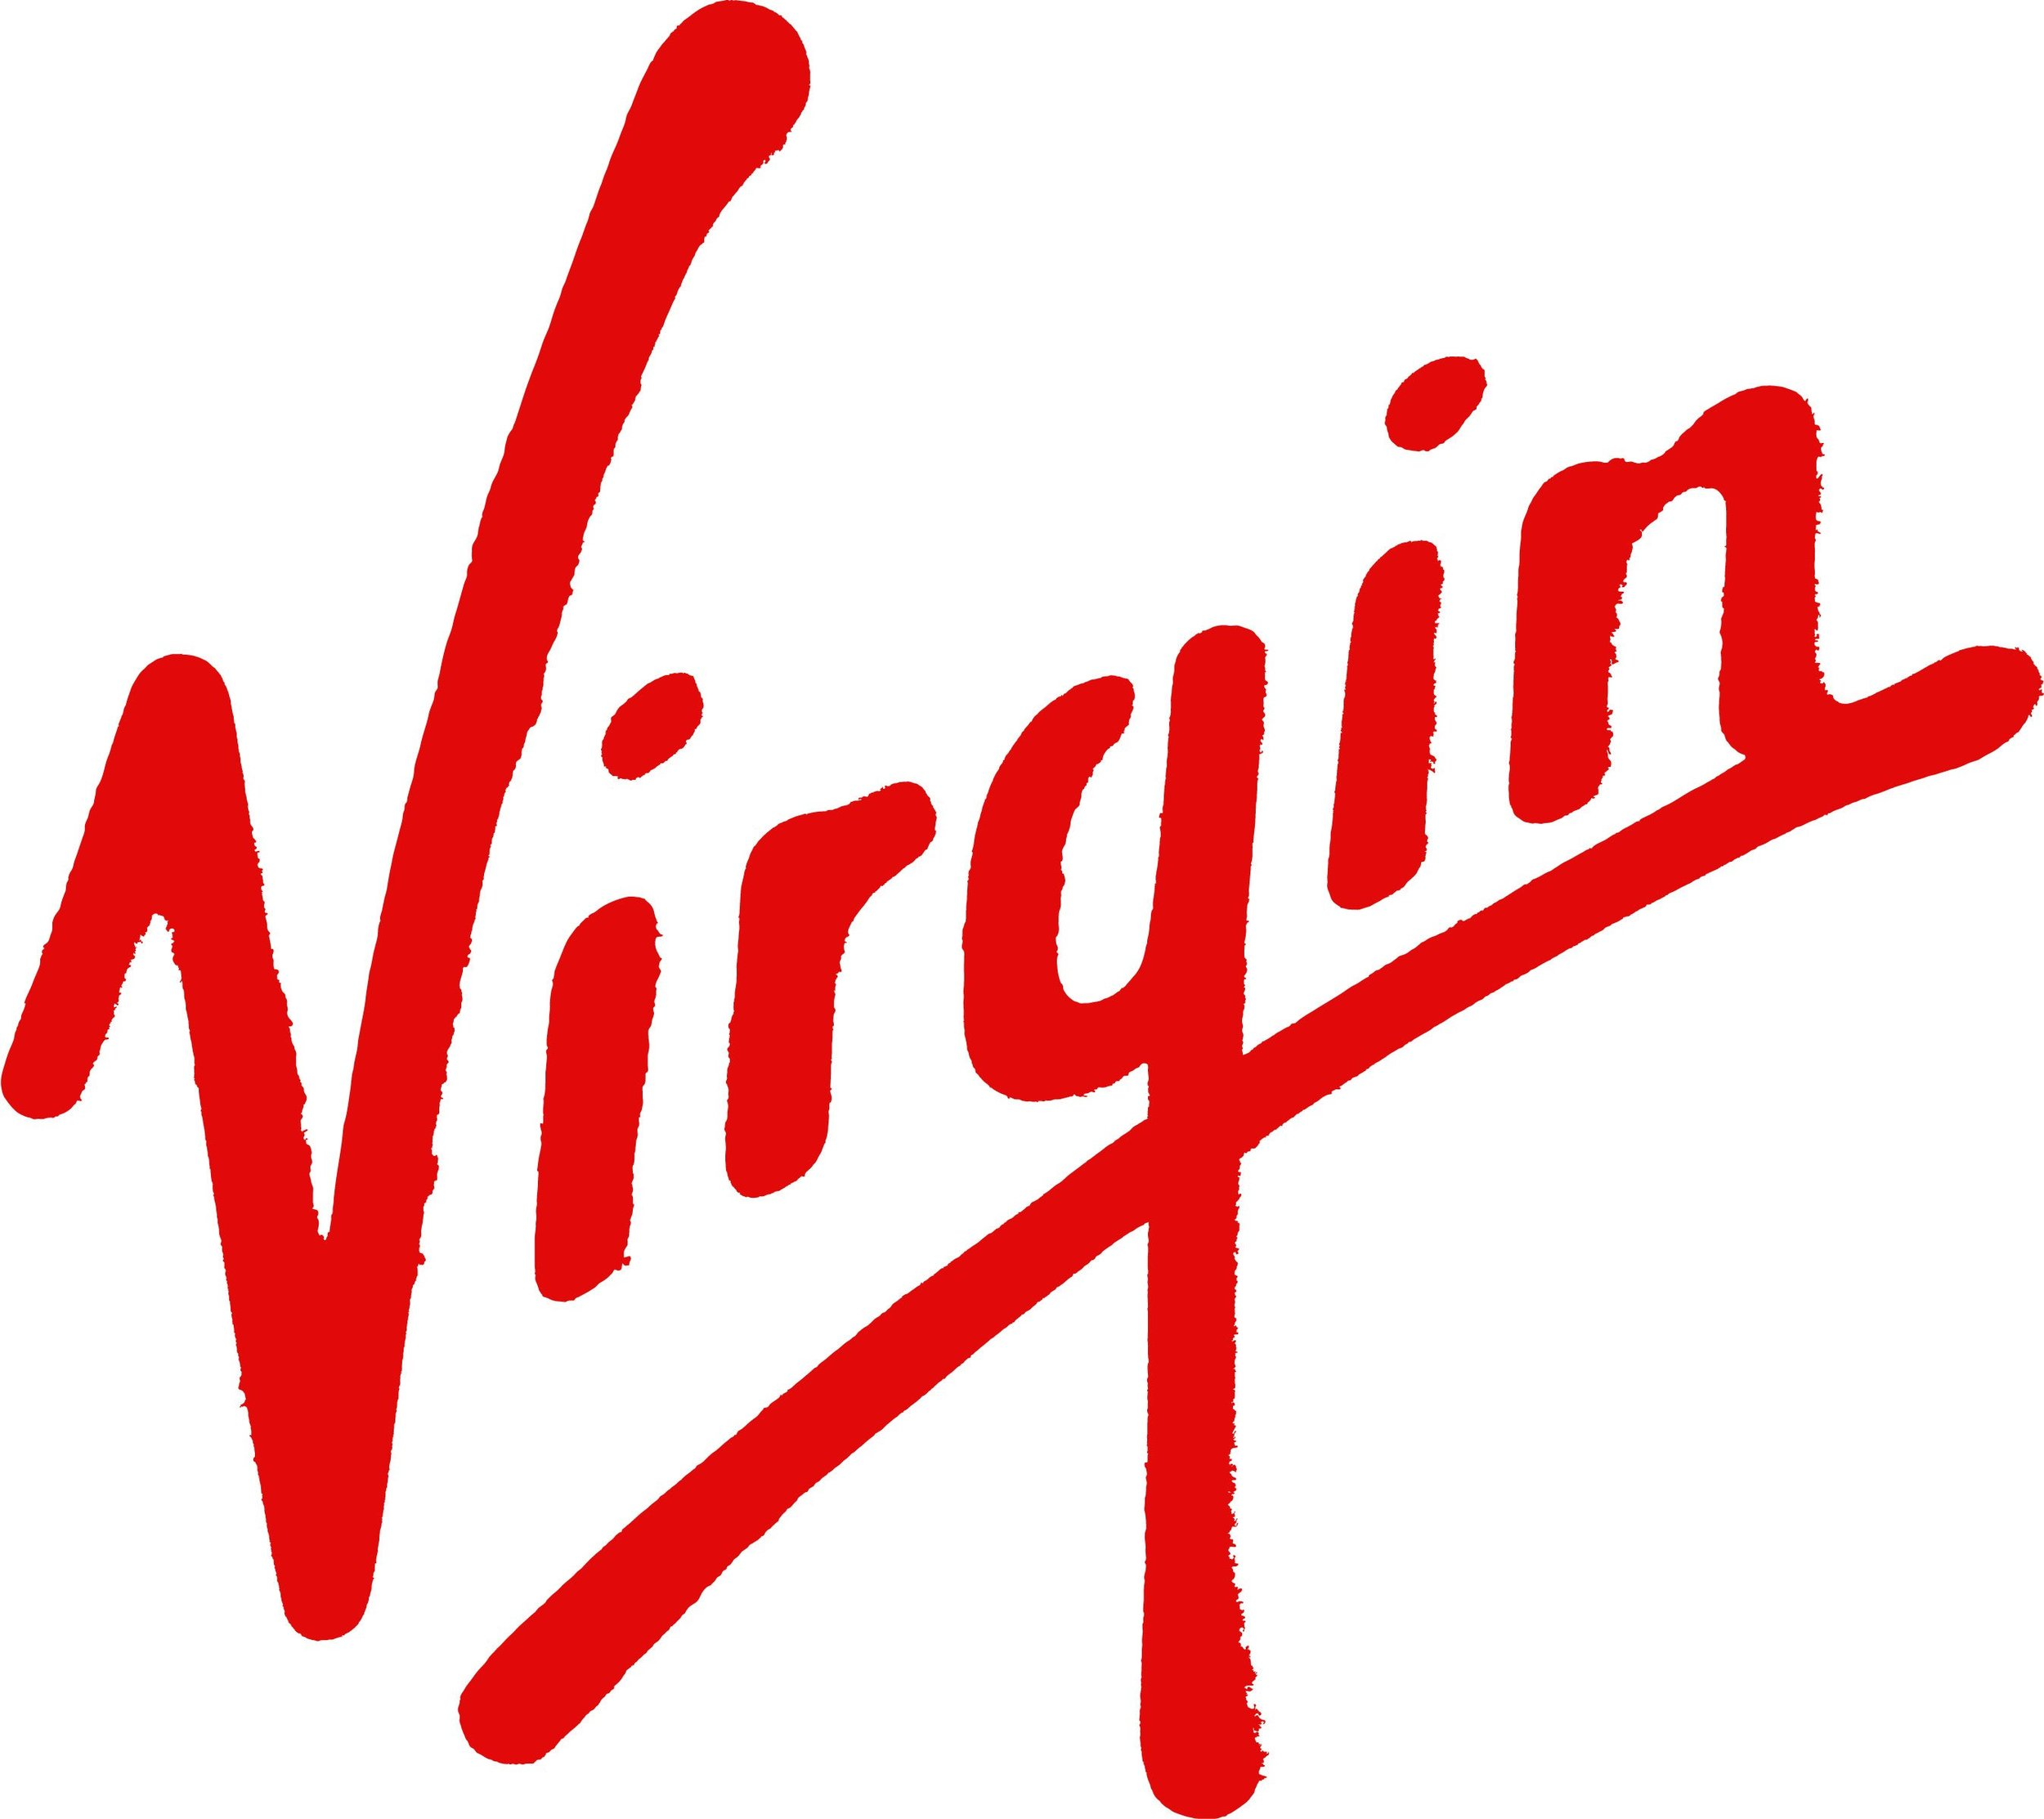 Virgin | Is An Artistic Or Creative Background Helpful When Building A Business?